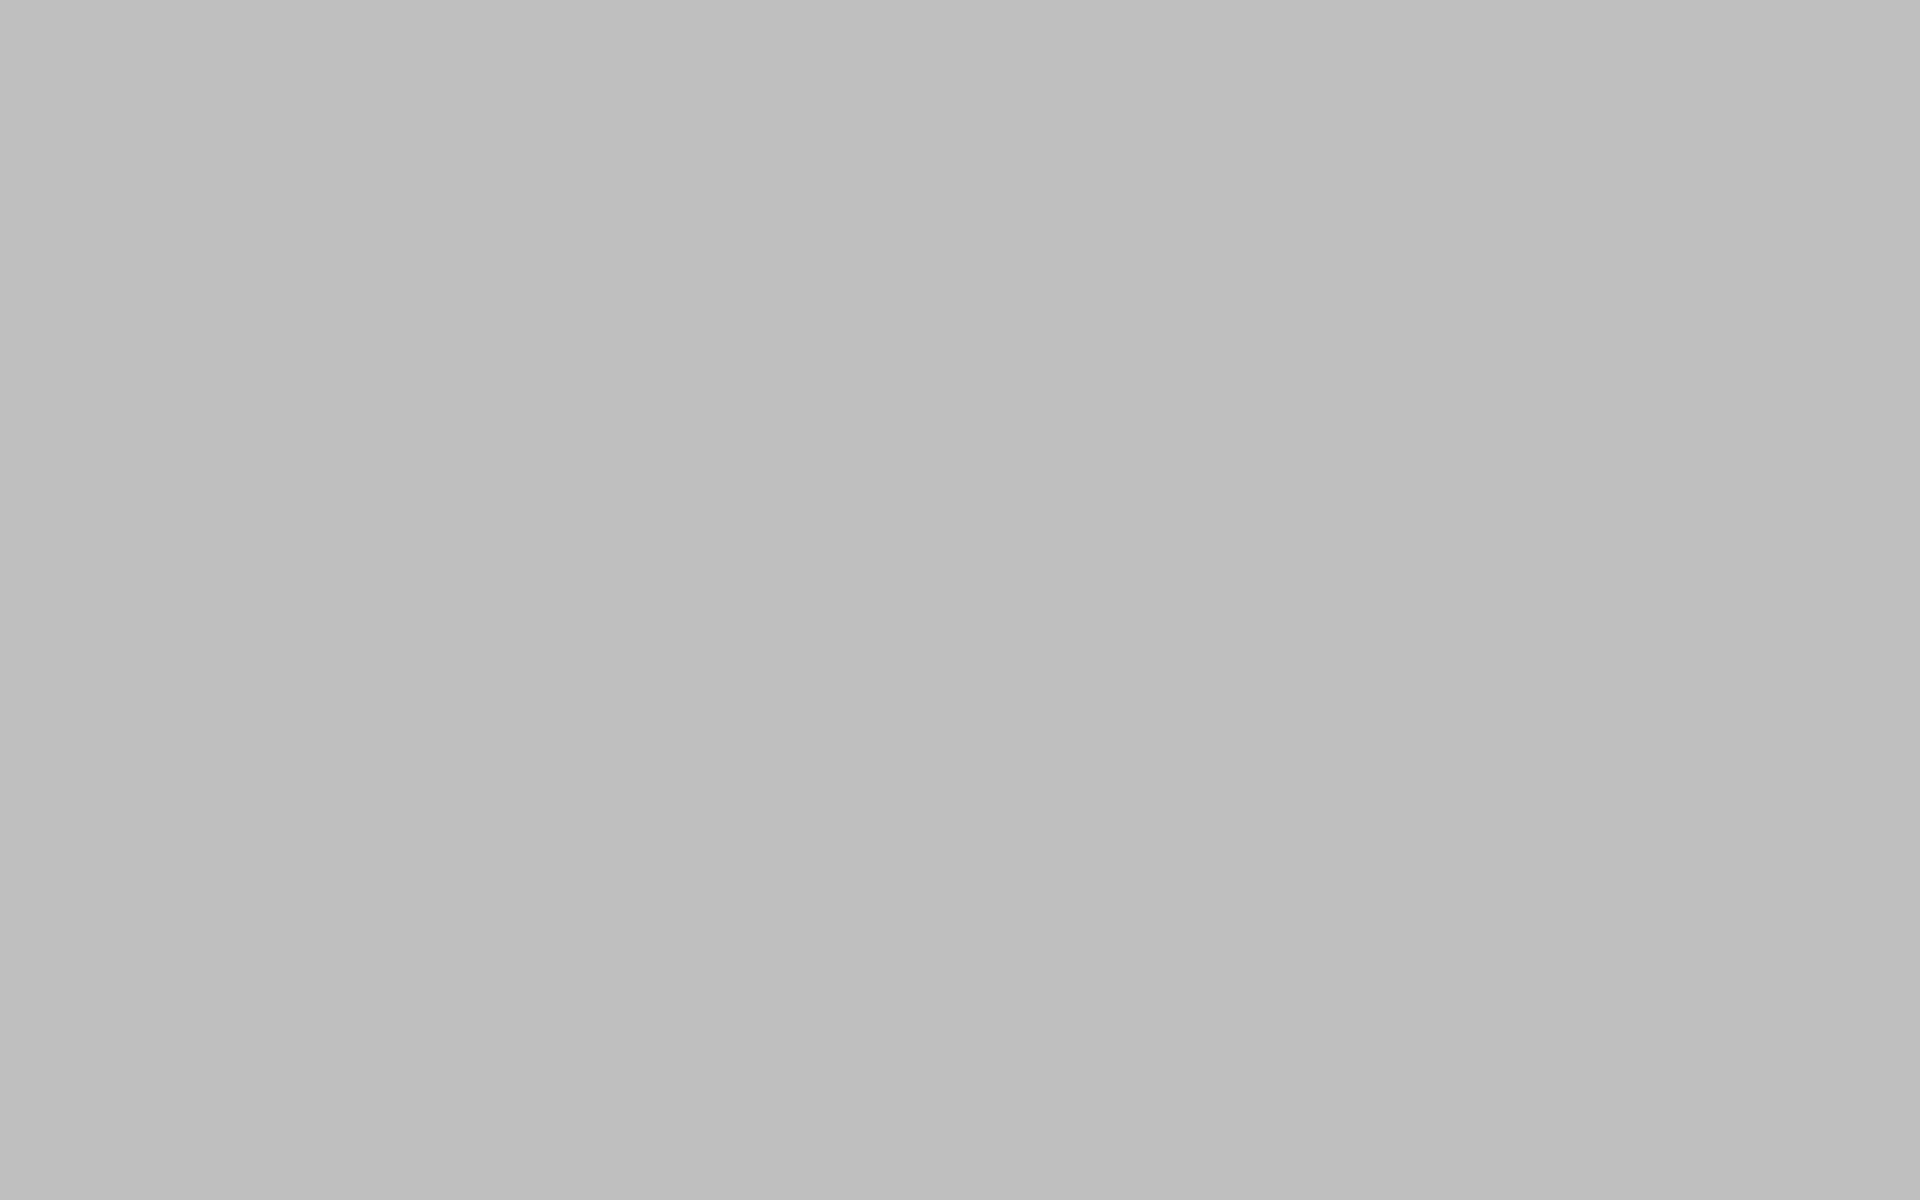 1920x1200 Gray X11 Gui Gray Solid Color Background